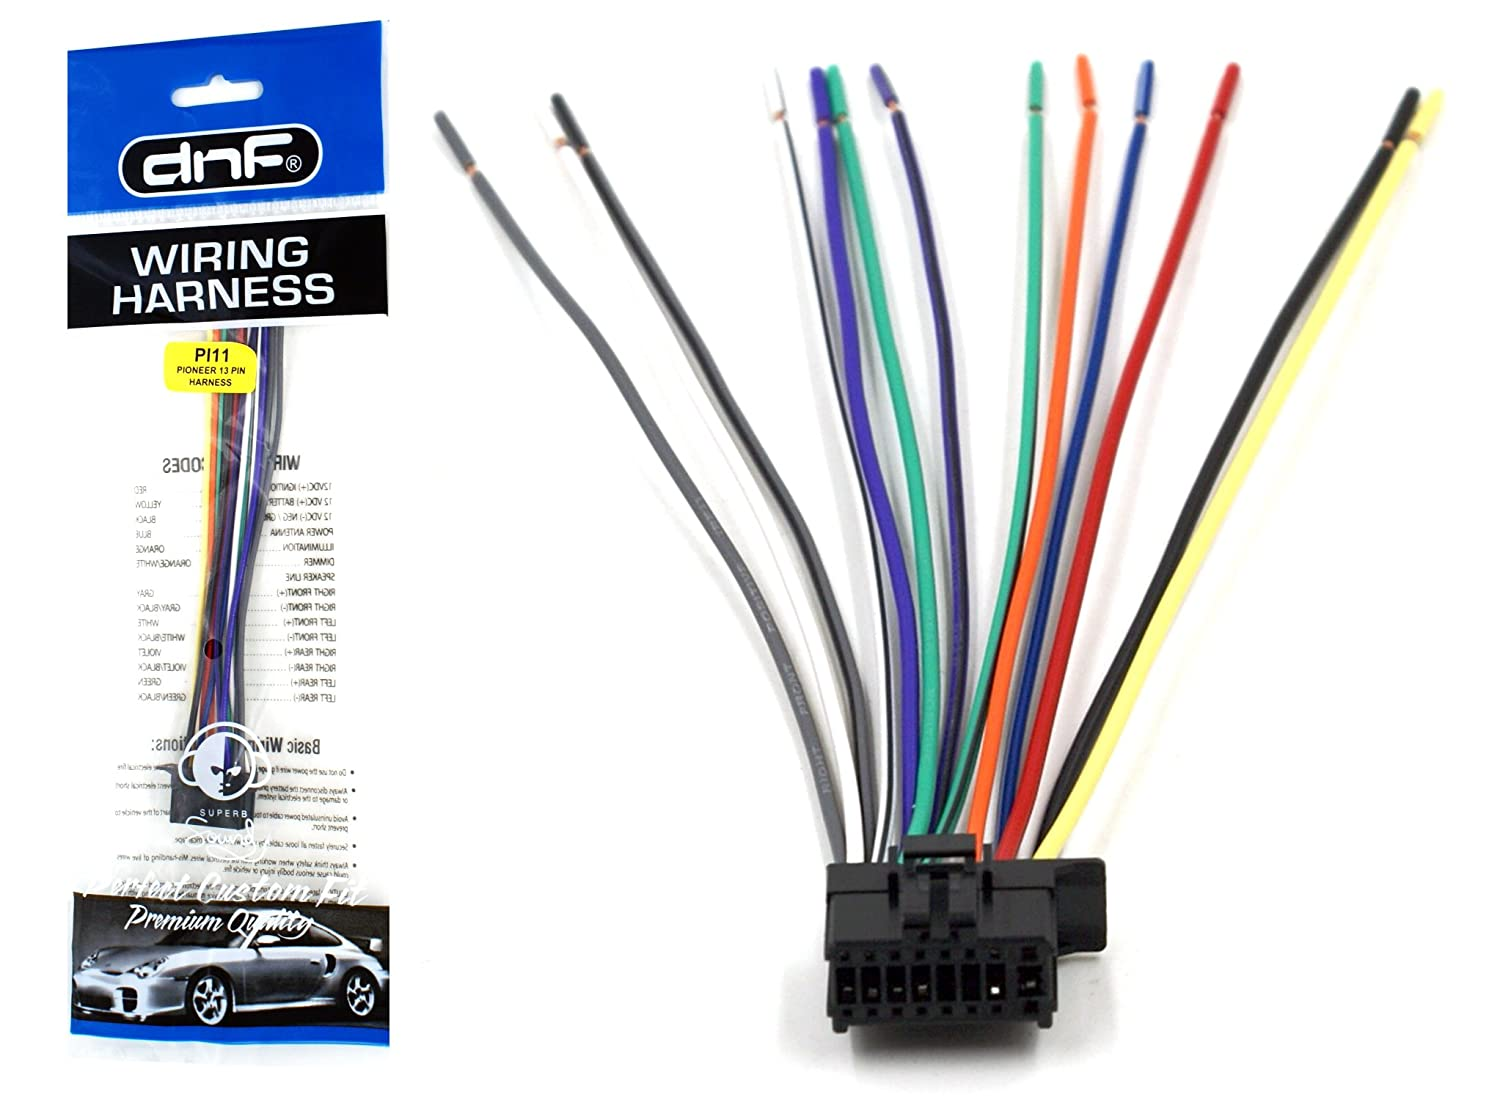 amazon com dnf pioneer wiring harness deh 1300mp deh 3300ub deh rh amazon com